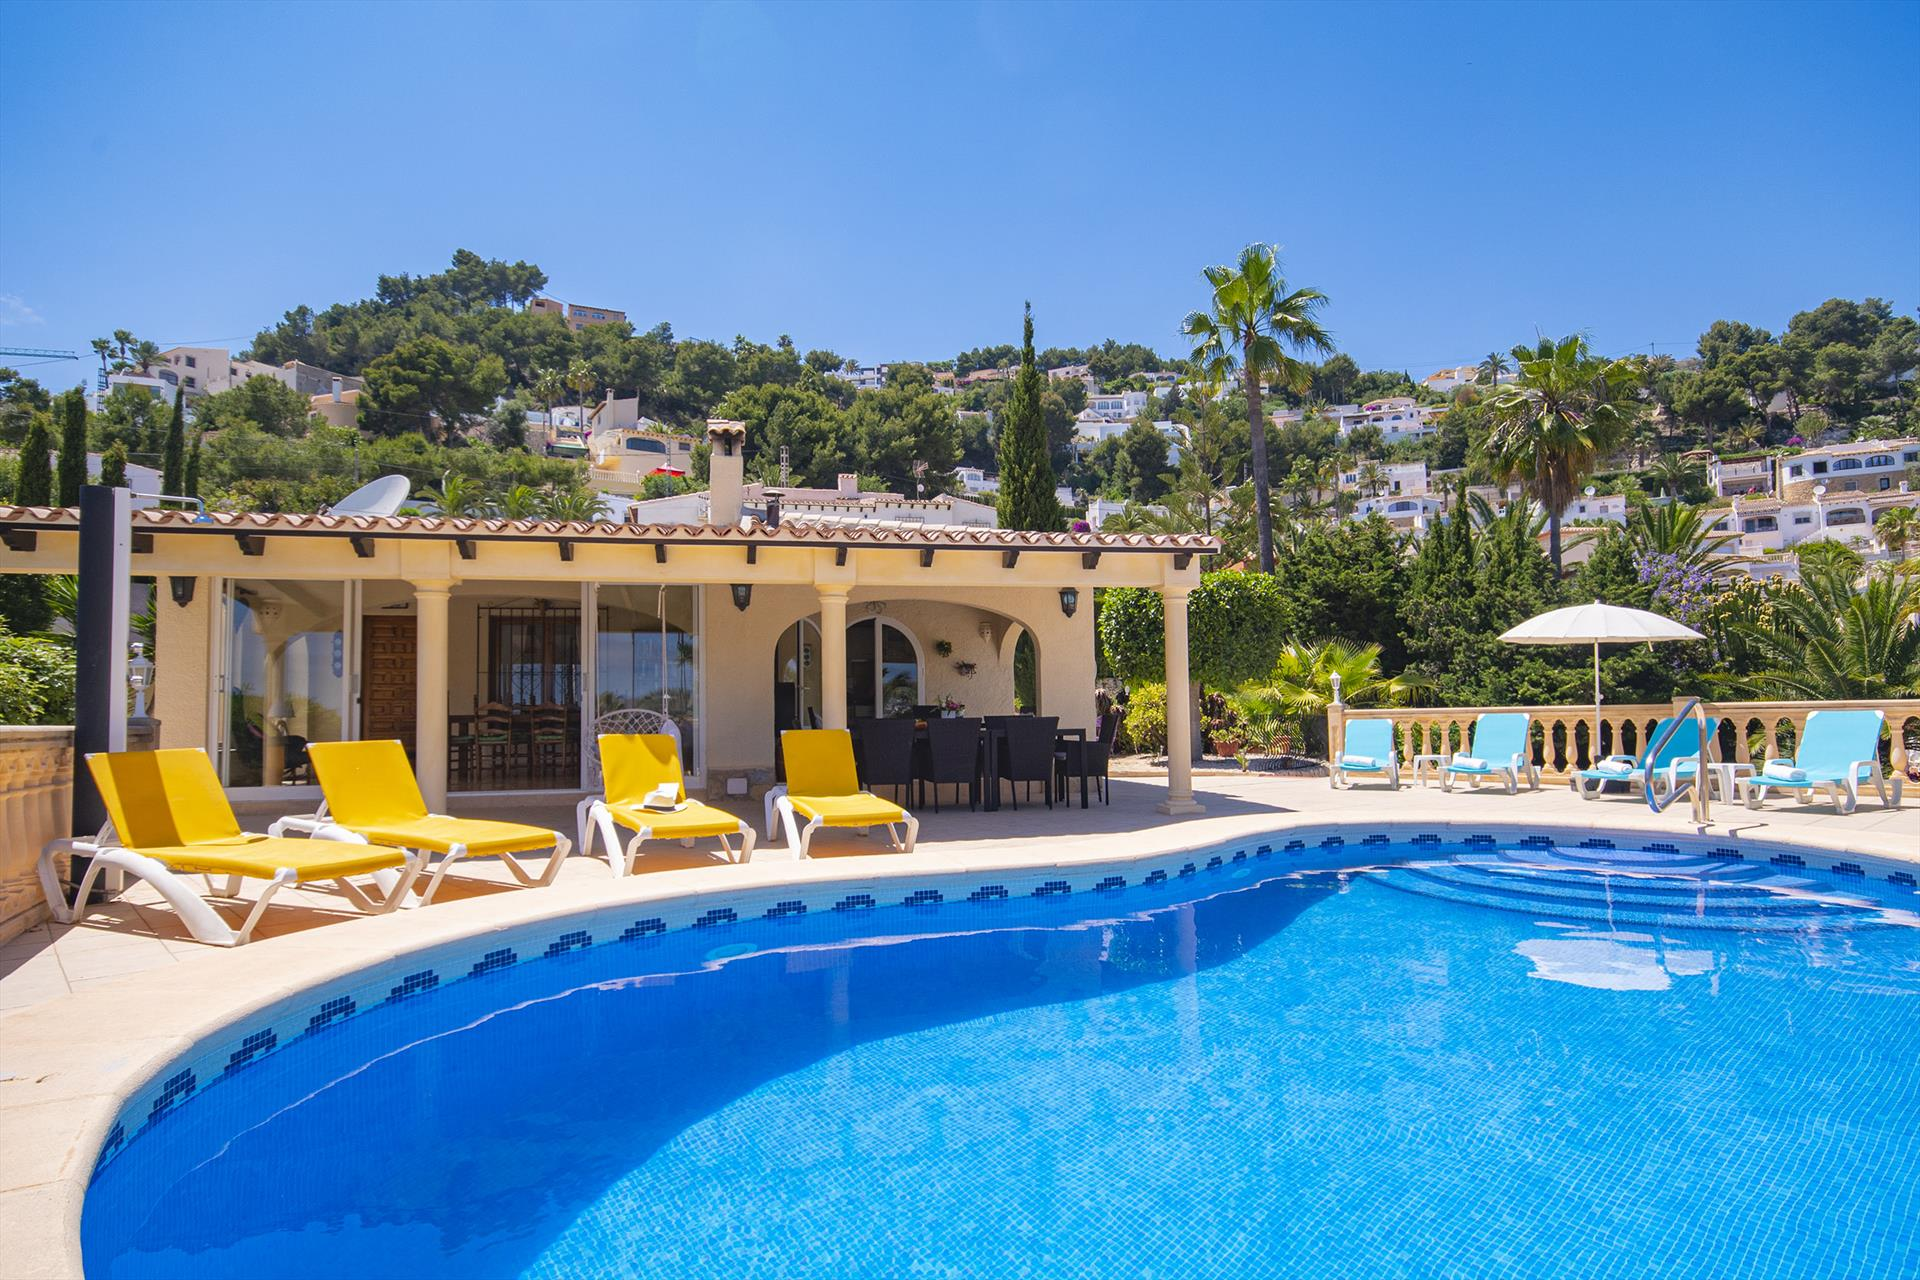 Sophie II, Beautiful and cheerful villa in Moraira, on the Costa Blanca, Spain with private pool for 10 persons. The villa is situated.....